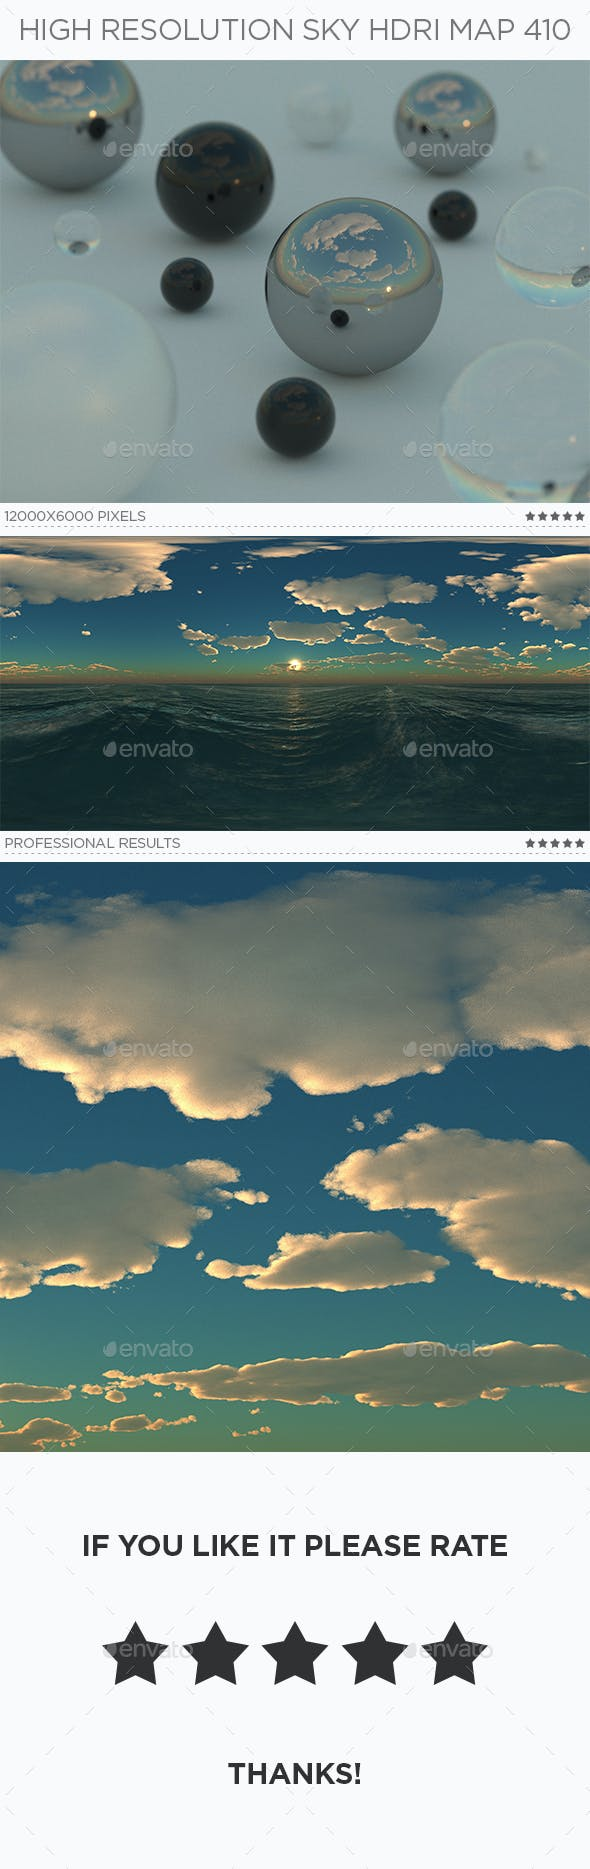 High Resolution Sky HDRi Map 410 - 3DOcean Item for Sale